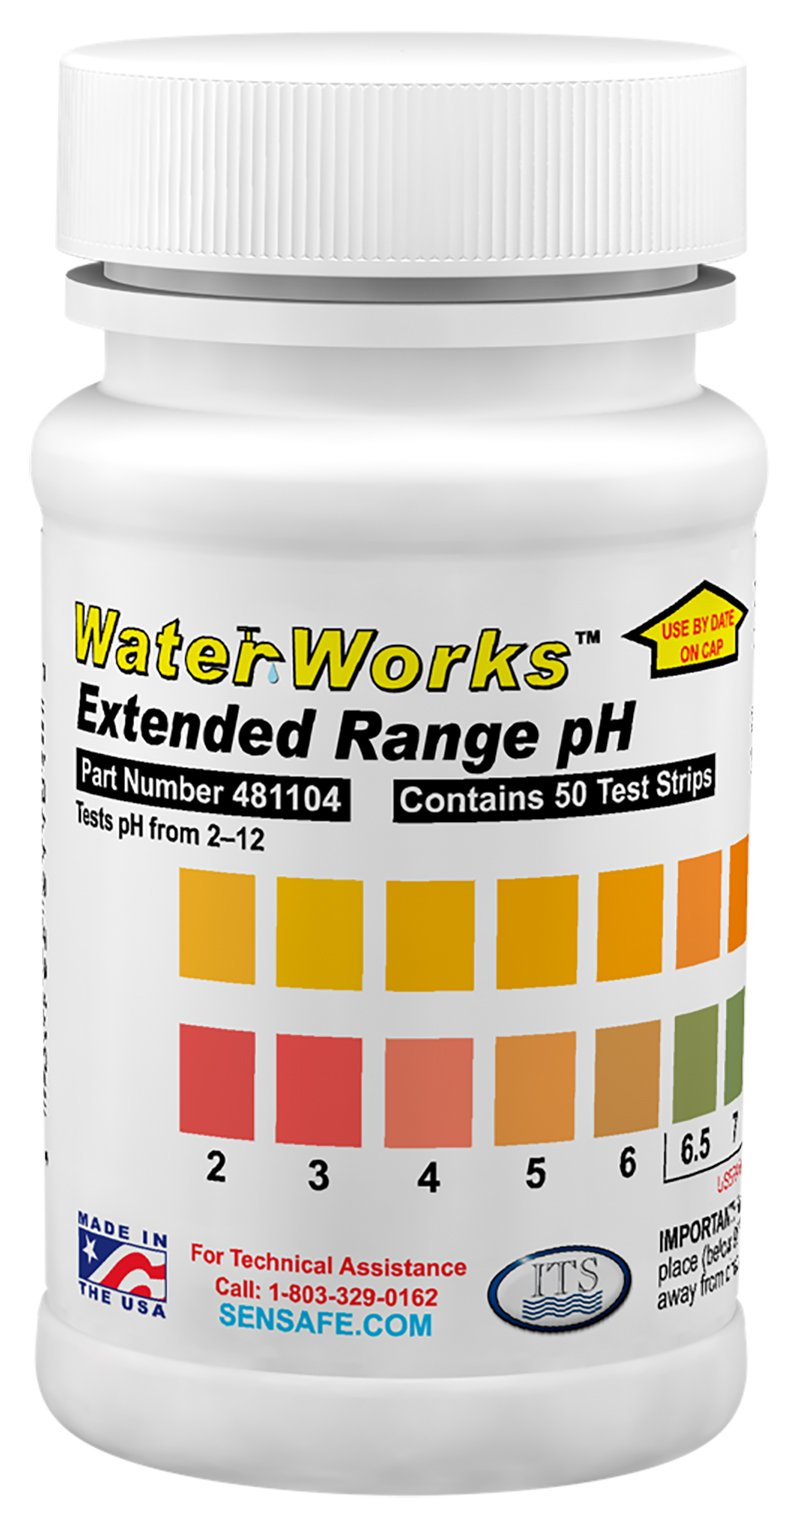 Industrial Test Systems 481104 WaterWorks pH Check by Industrial Test Systems